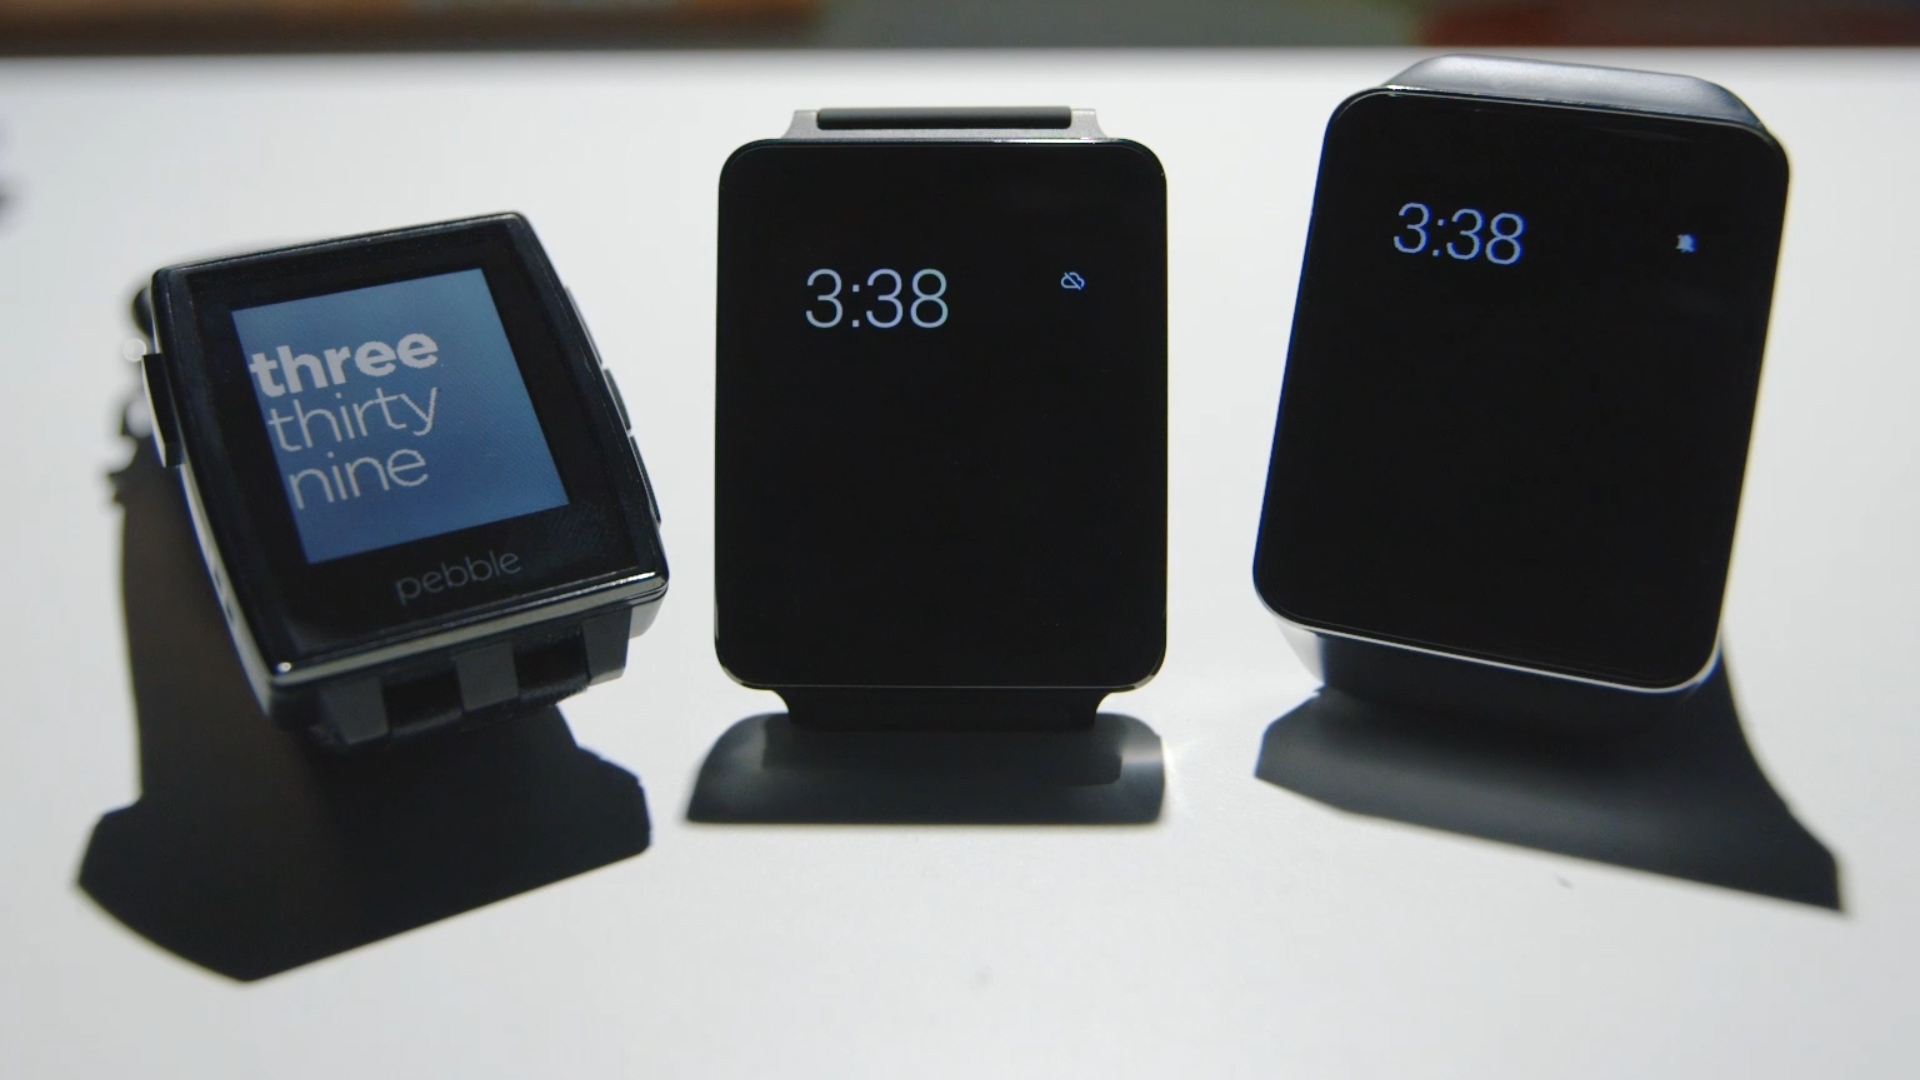 Android Wear Google The Verge Best 038 Free Applications For Electronics Electrical Engineers Which Should You Buy